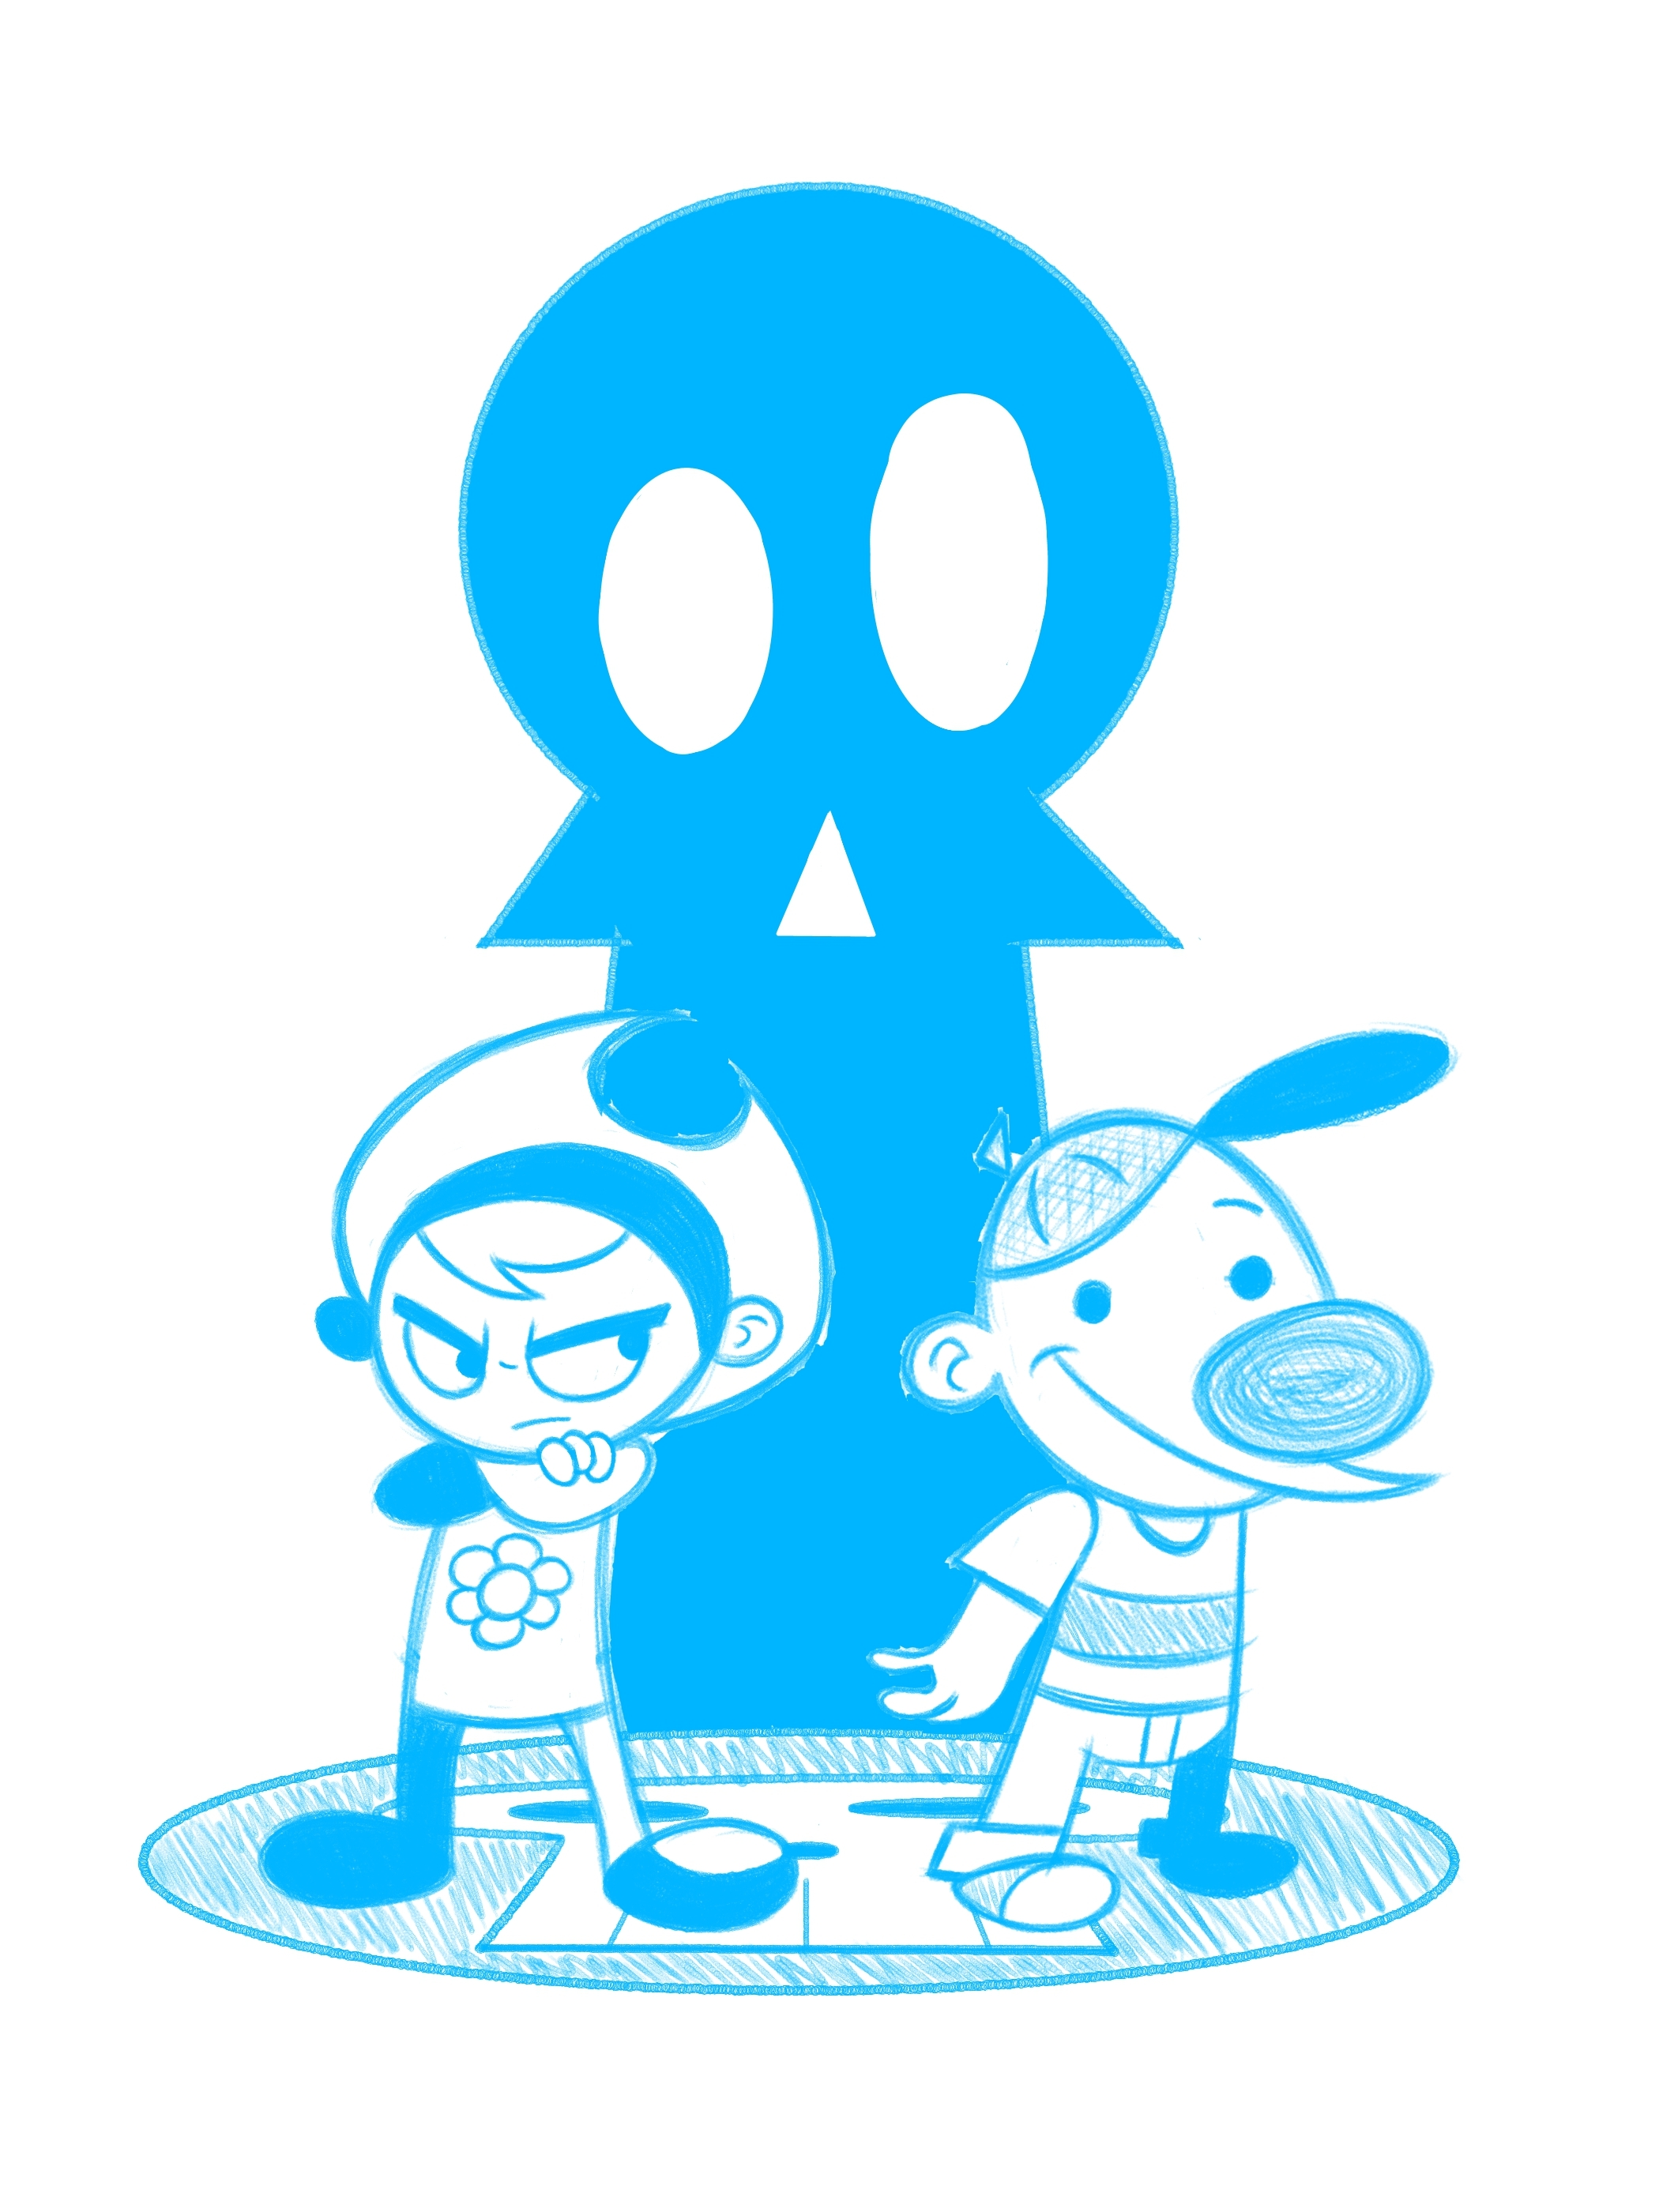 An Ode to Billy and Mandy (penciling process)